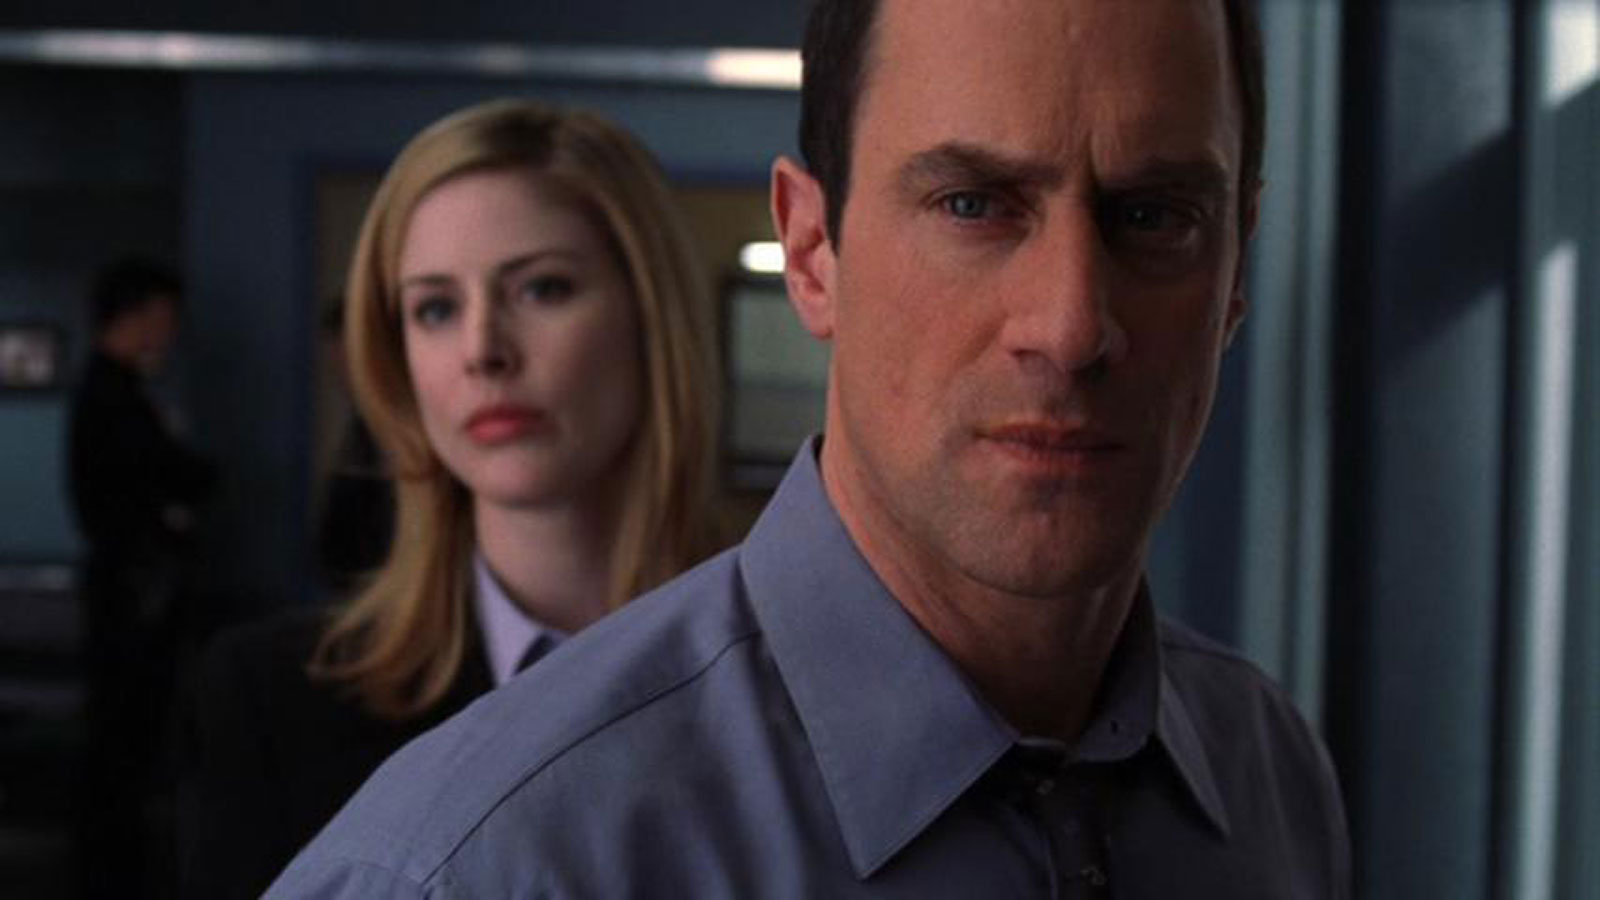 Elliot Stabler is back in a 'Law & Order: SVU' spin-off